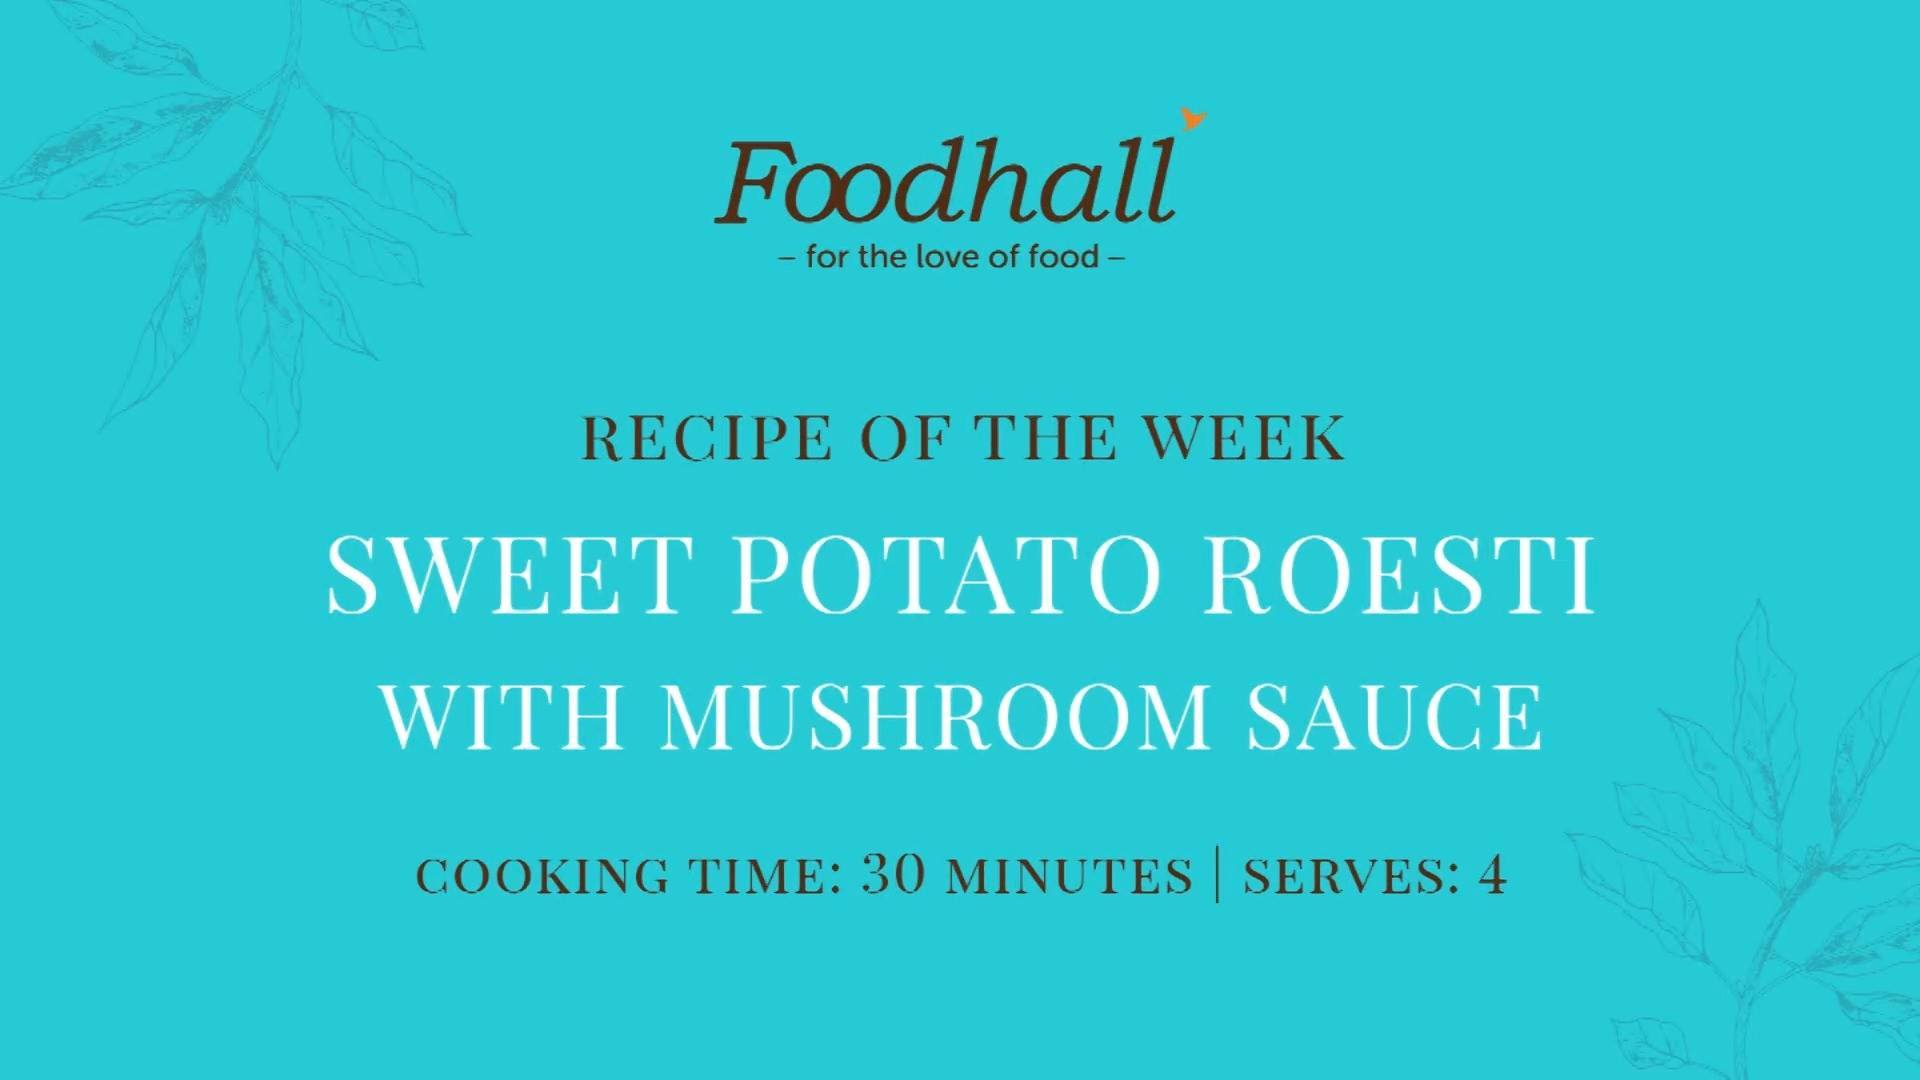 #RecipeoftheWeek: Sweet Potato Roesti with Mushroom Sauce. A comforting cross between potato pancakes and hash browns, made with sweet potato for an added health kick! We love topping our's off with a rich mushroom sauce, to add an earthy balance. It's a blissful snack or supper on a moody-monsoon evening!  #ForTheLoveofFood #Monsoons #SweetPotato #Roesti #SweetPotatoRoesti #ComfortFood #RecipeShare #EasyRecipe #FoodhallIndia